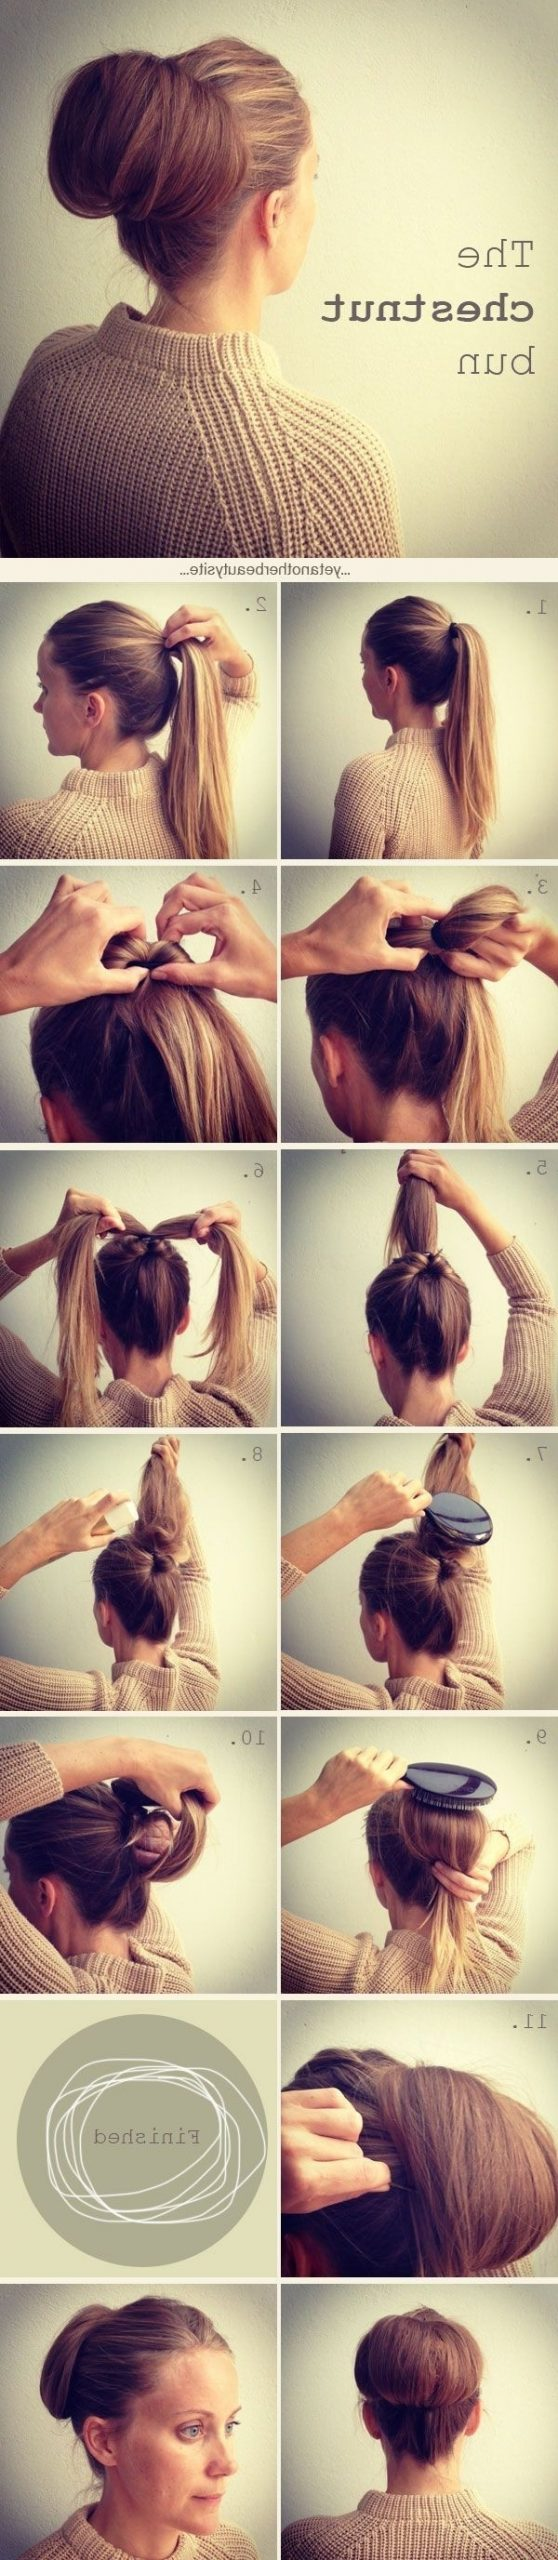 18 Simple Office Hairstyles For Women: You Have To See 30+ Adorable Indian Office Hairstyles For Medium Hair